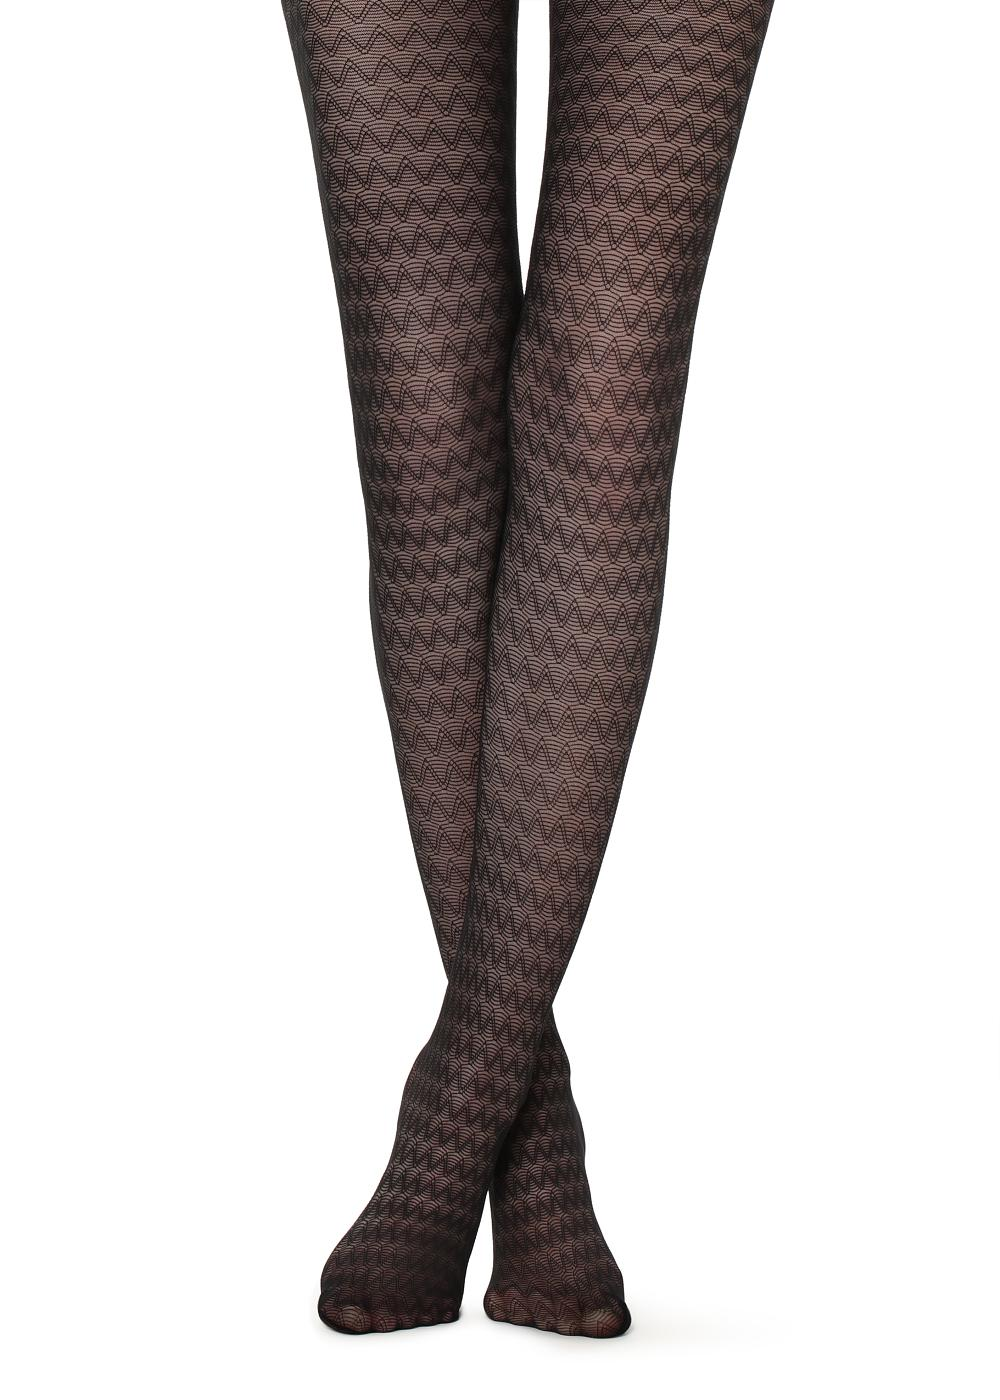 Chevron patterned tights